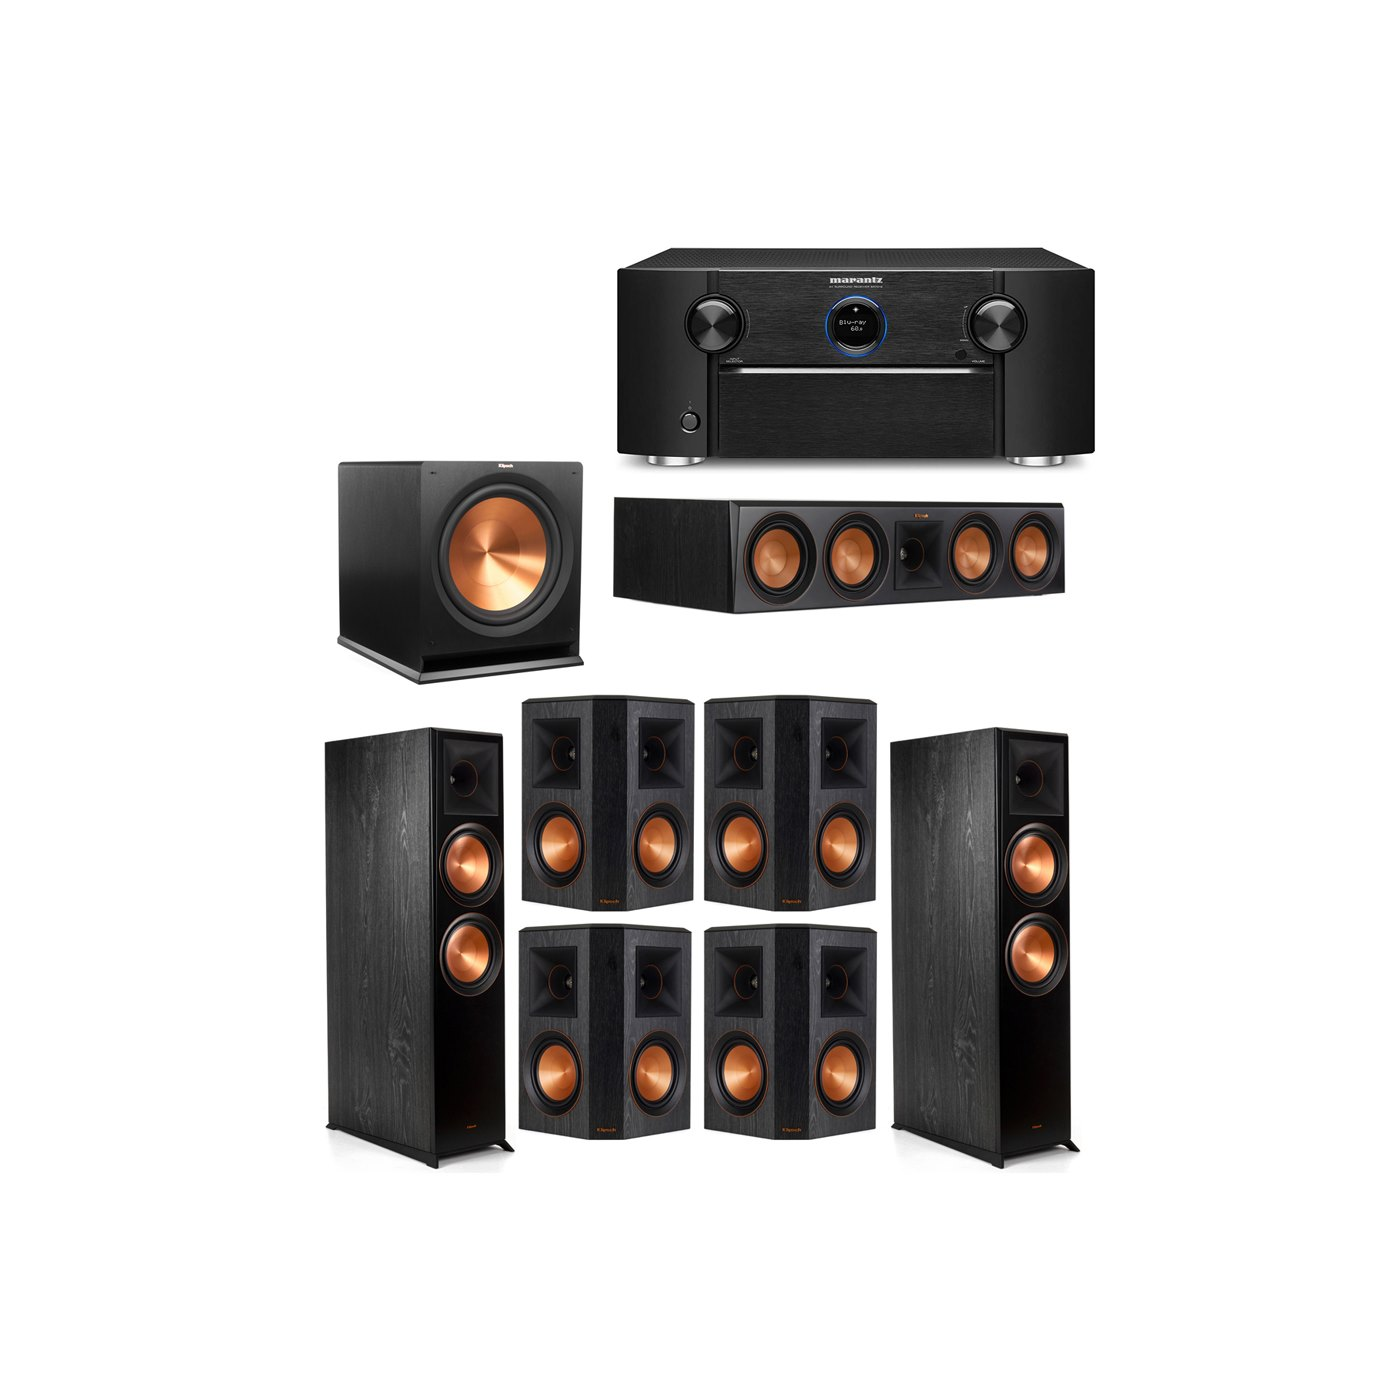 Klipsch 7.1 System with 2 RP-8000F Floorstanding Speakers, 1 Klipsch RP-504C Center Speaker, 4 Klipsch RP-502S Surround Speakers, 1 Klipsch R-115SW Subwoofer, 1 Marantz SR7012 A/V Receiver